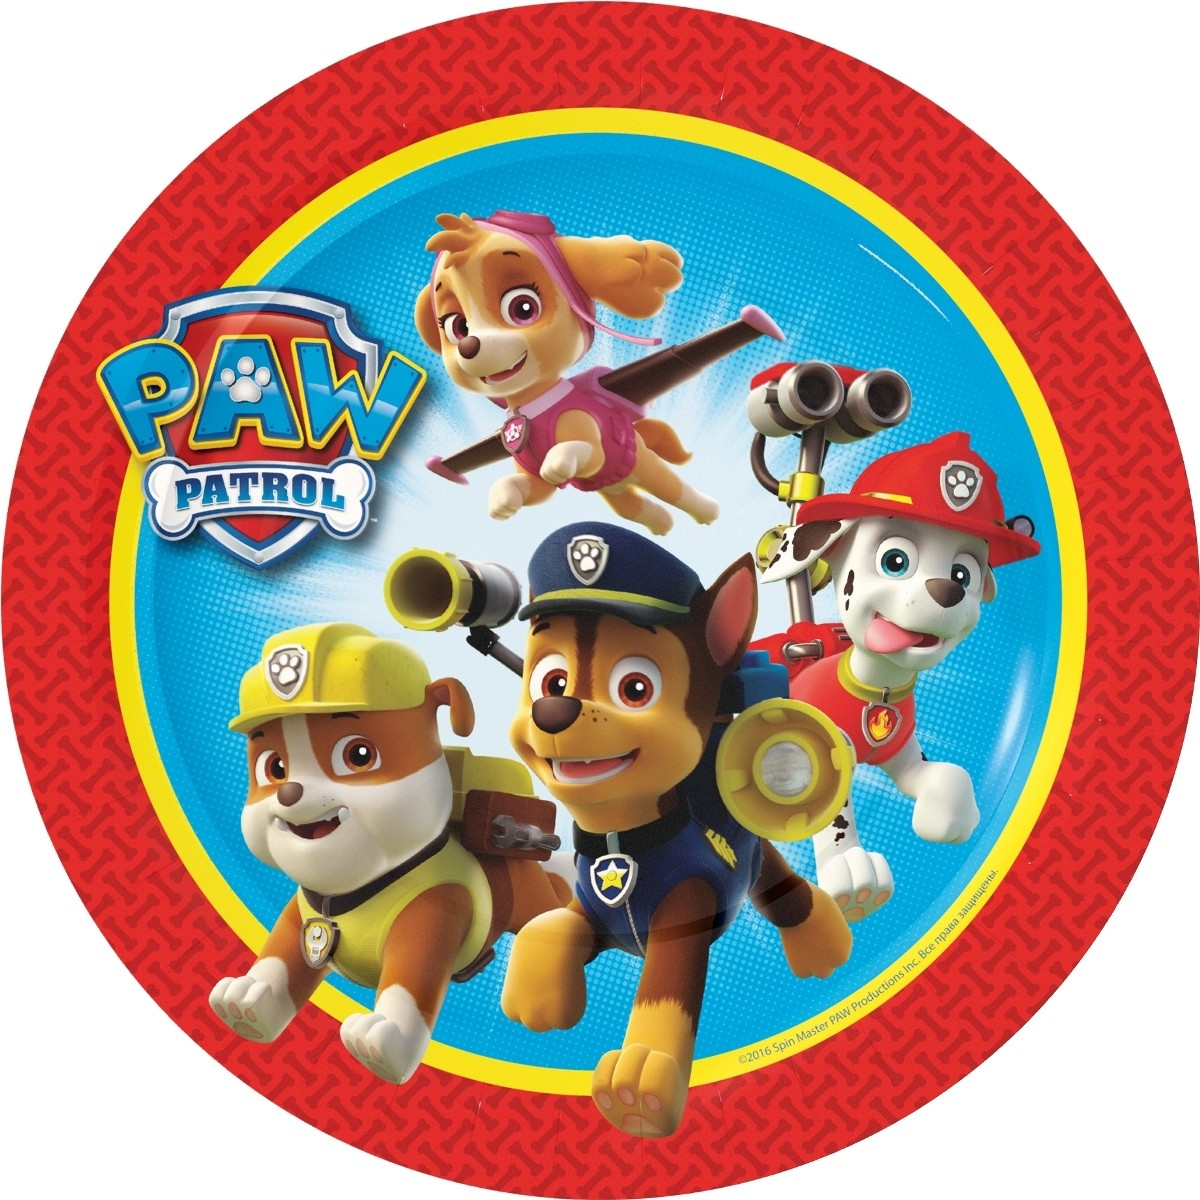 Paw Patrol Paw Patrol Тарелки одноразовые Paw Patrol 6 шт. cute long sleeve paw patrol t shirt pants pajamas for boys